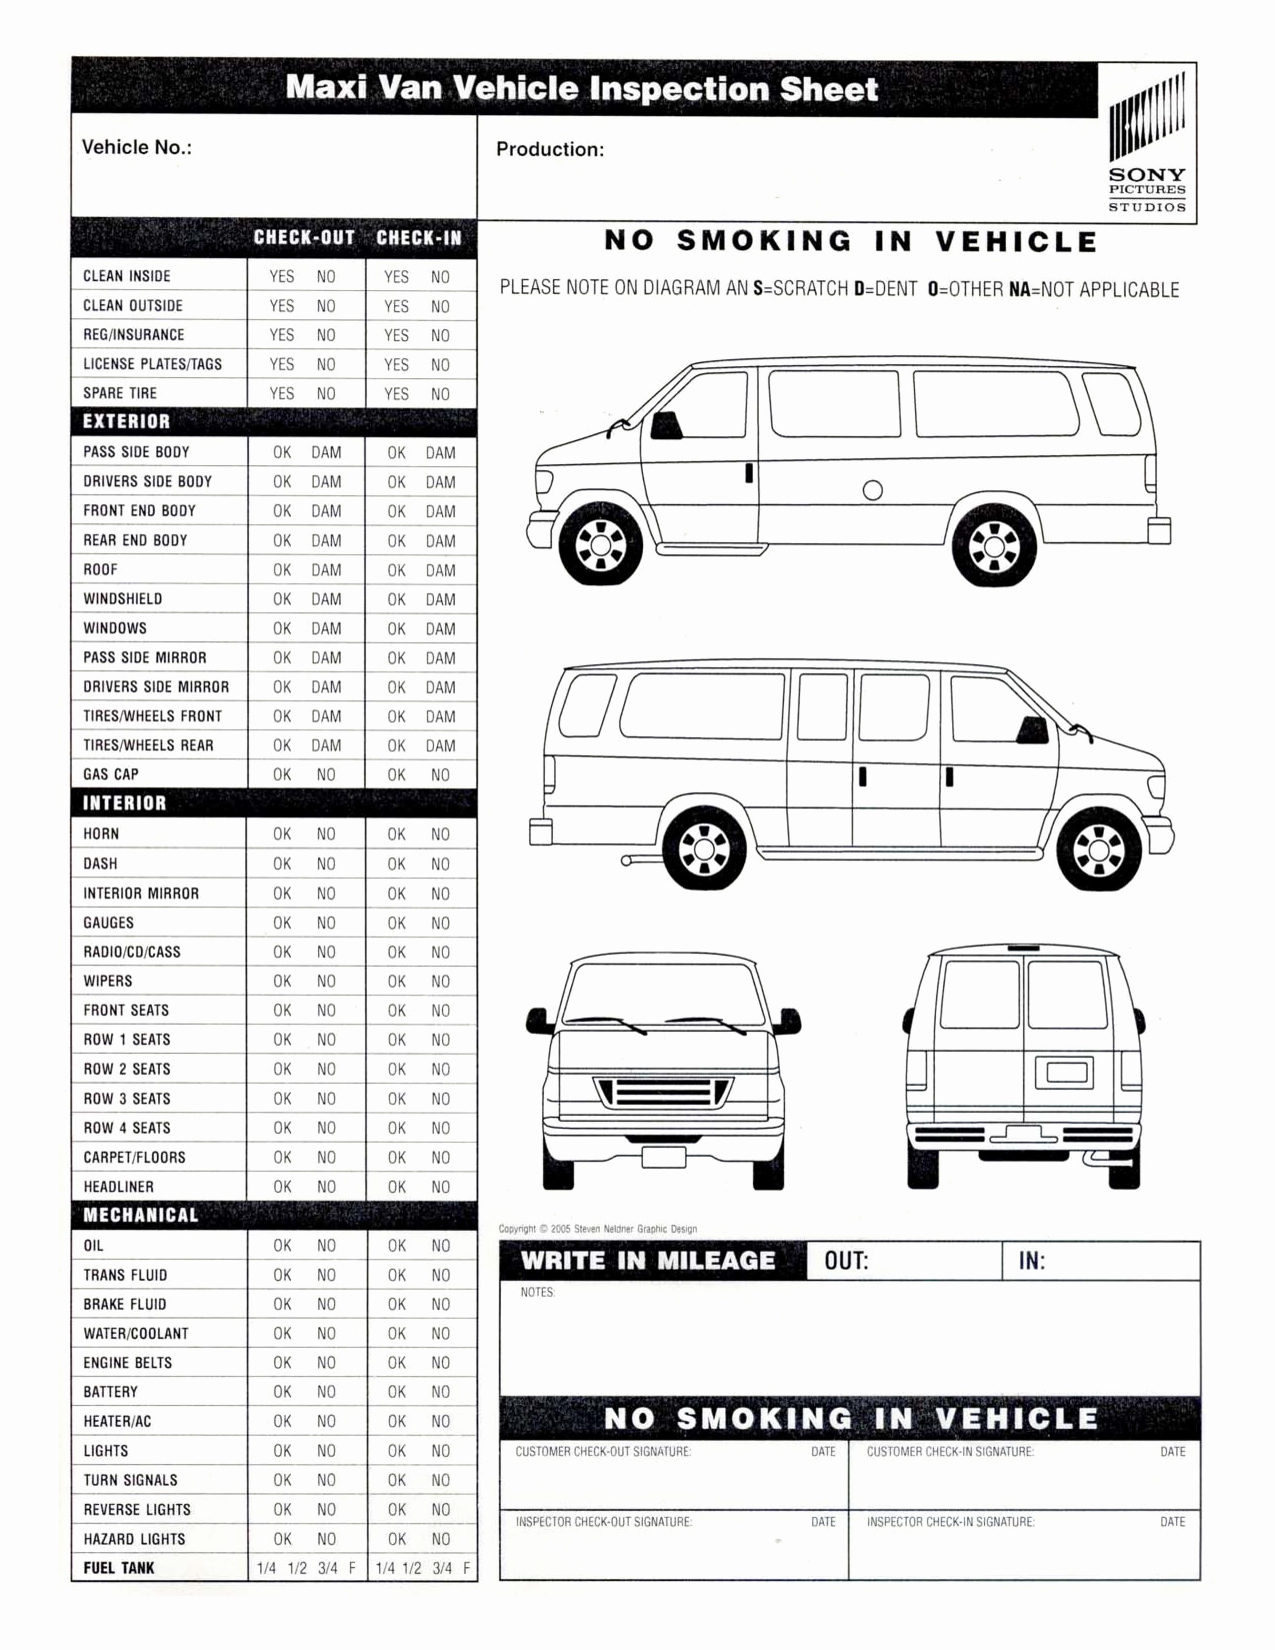 Car Inspection Checklist Template Fresh Vehicle Inspection Sheet Template